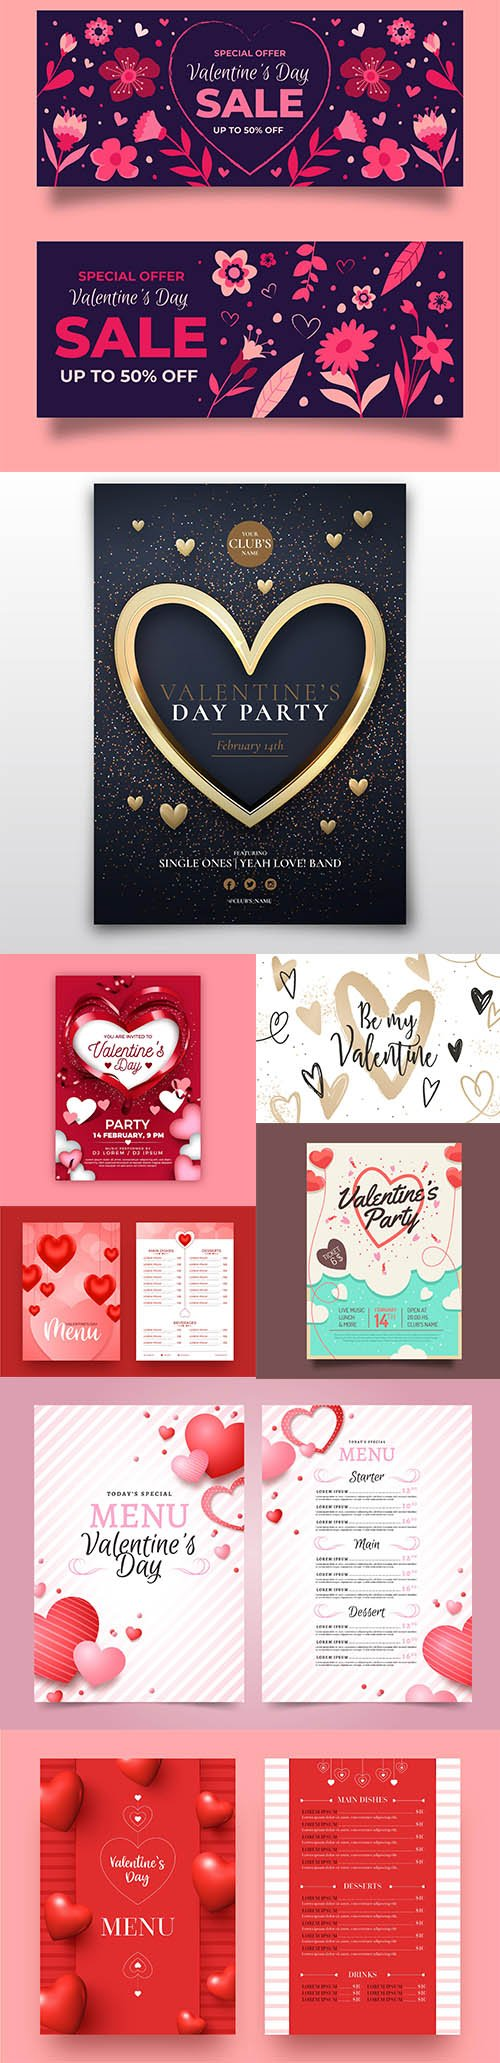 Happy Valentines day vector collection vol 5